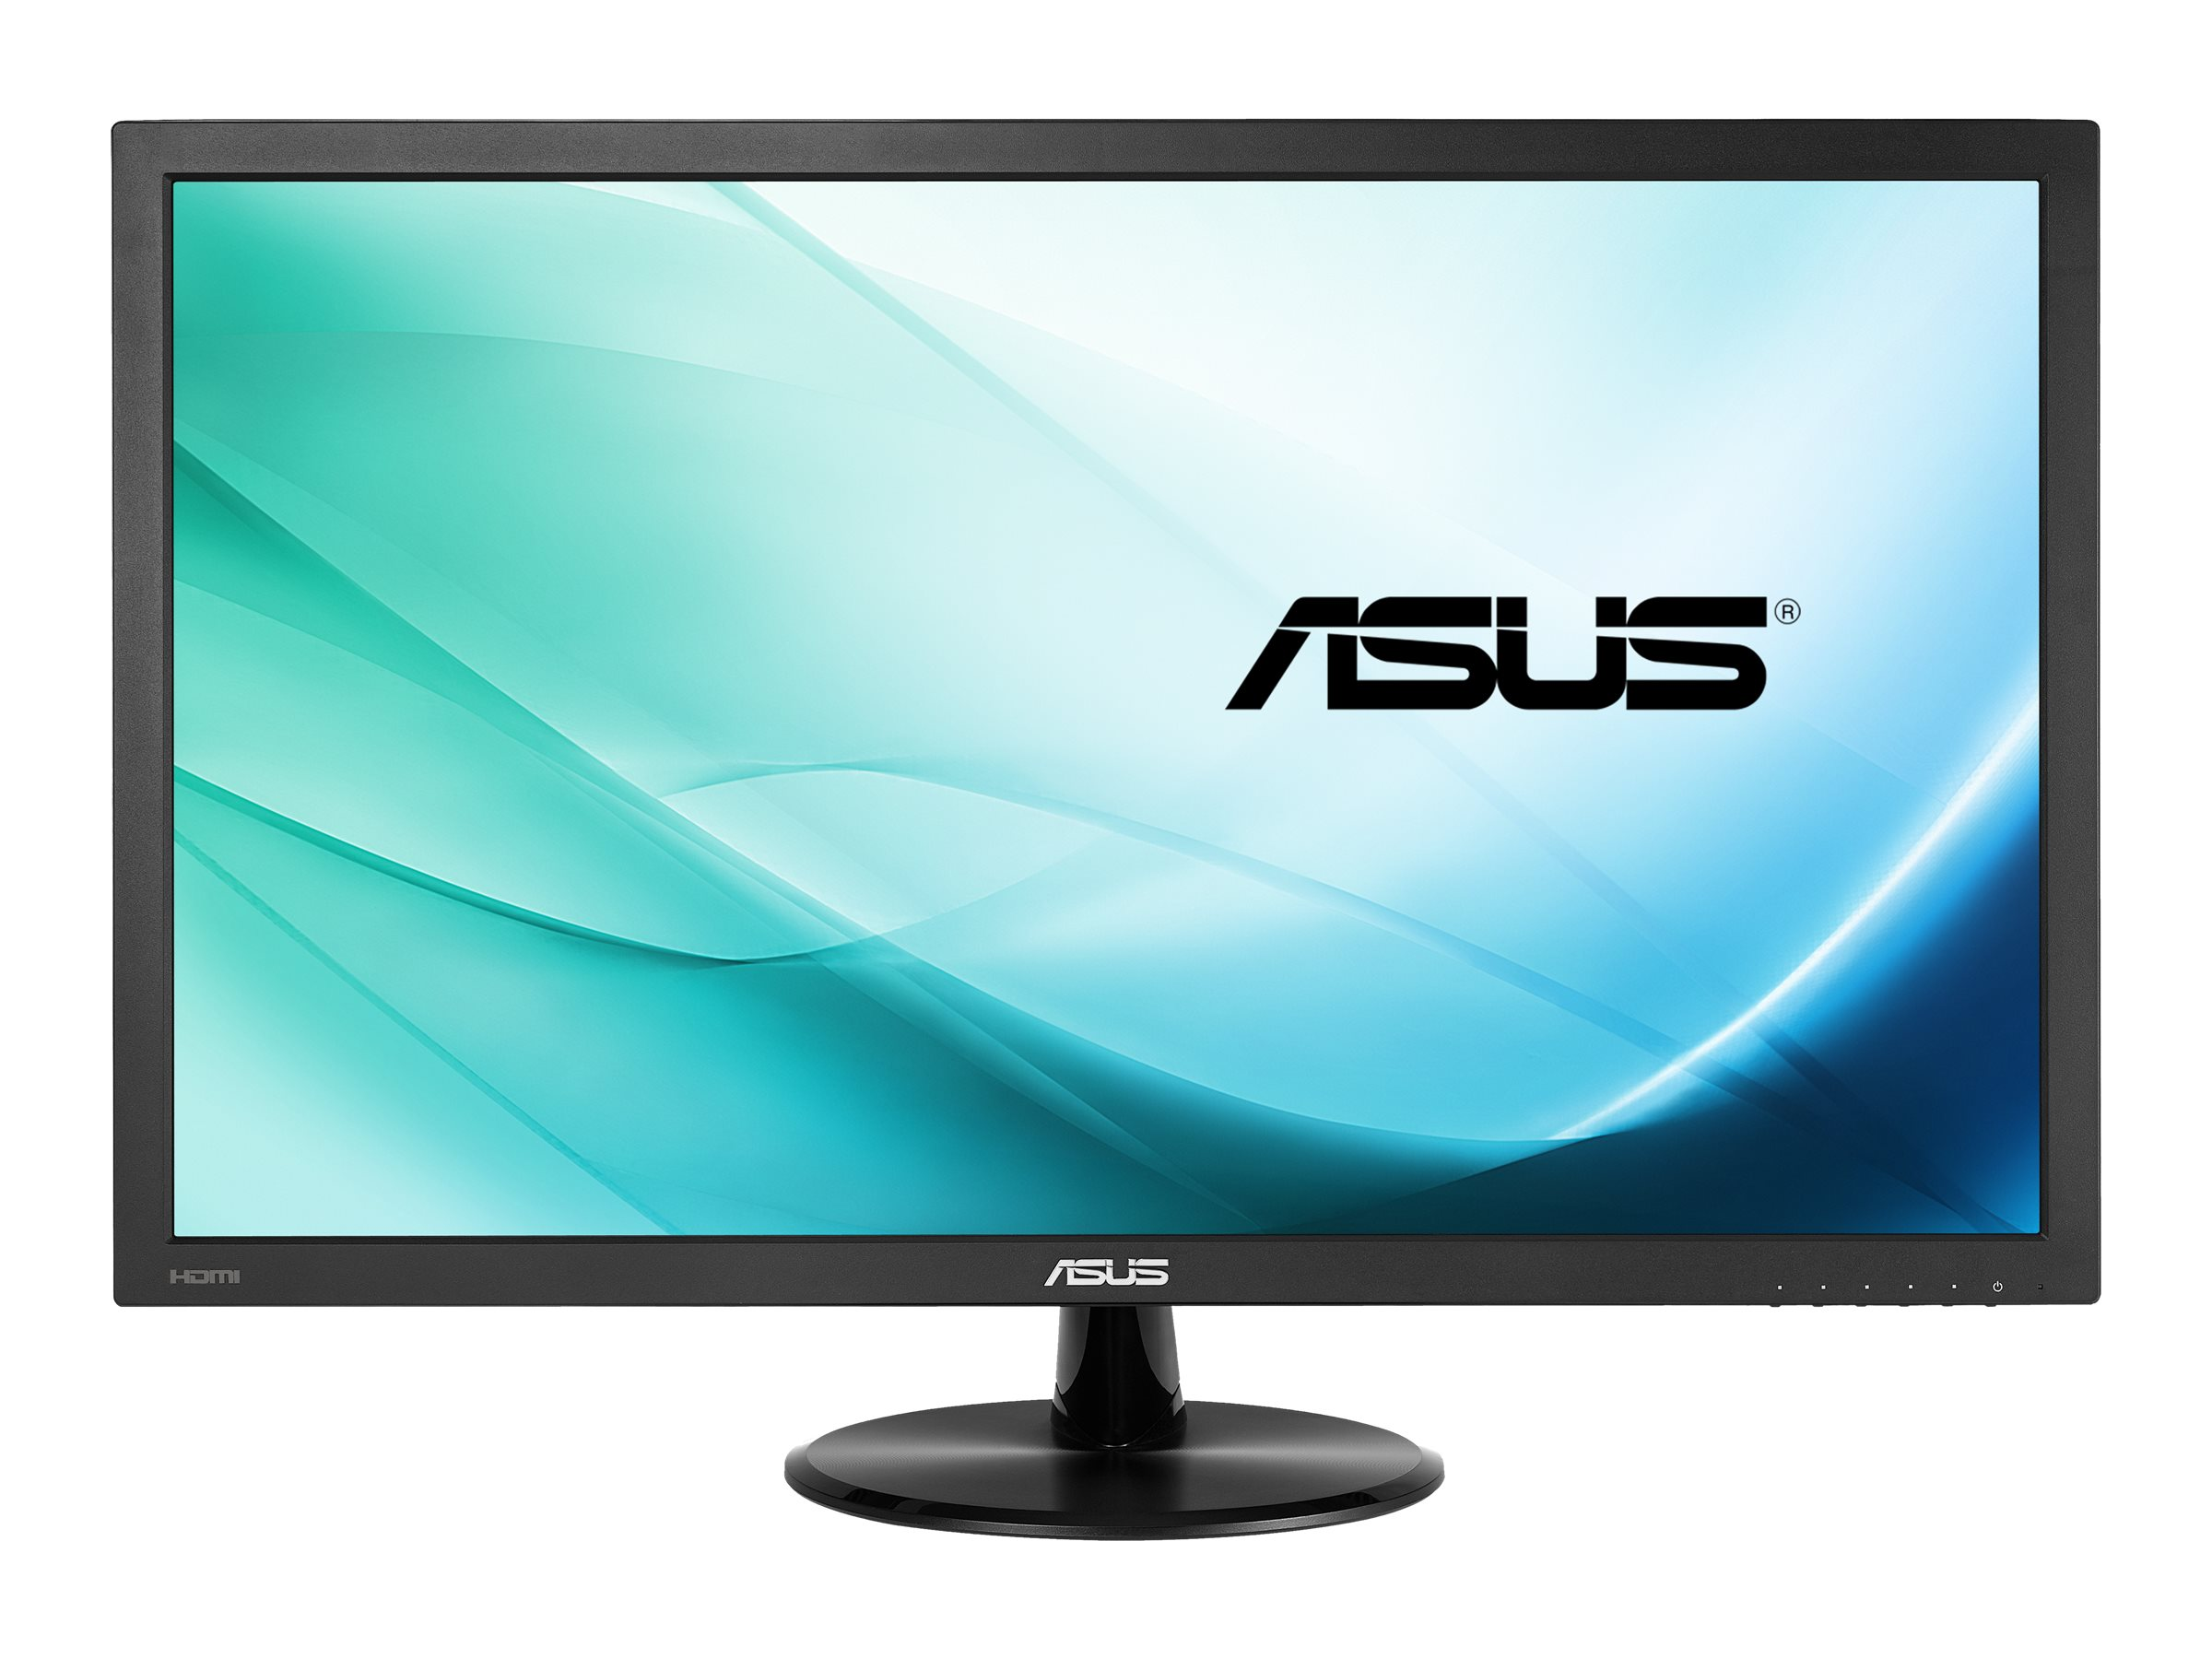 Asus 21.5 VP228H Full HD LED-LCD Monitor, Black, VP228H, 31022165, Monitors - LED-LCD